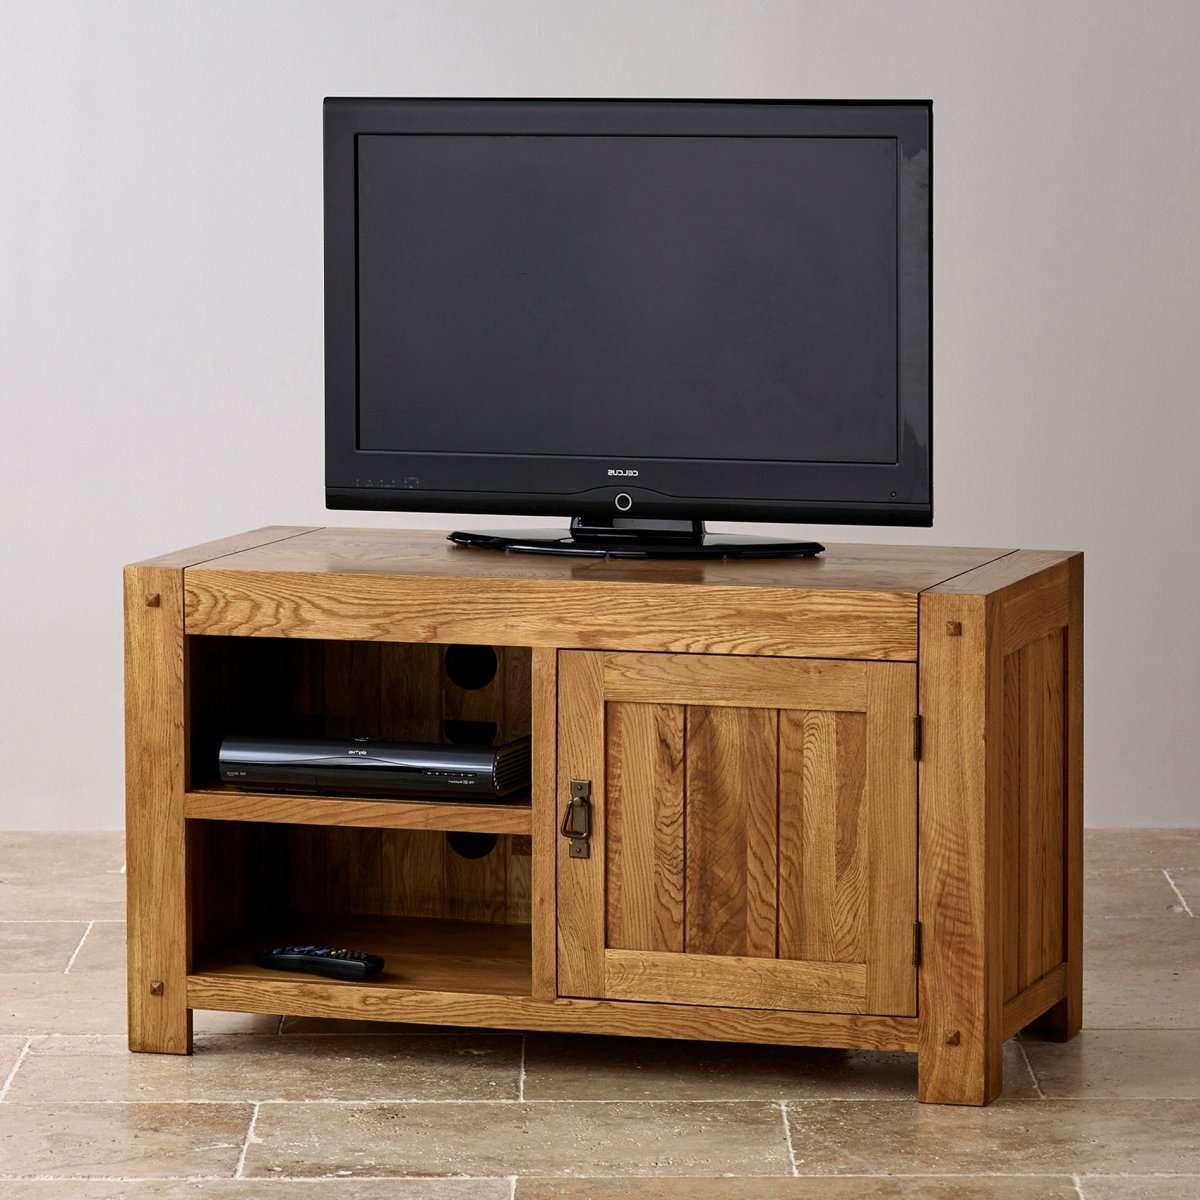 Oak Tv Cabinets J22 In Wonderful Home Remodeling Inspiration With Throughout Oak Tv Cabinets (Gallery 8 of 20)